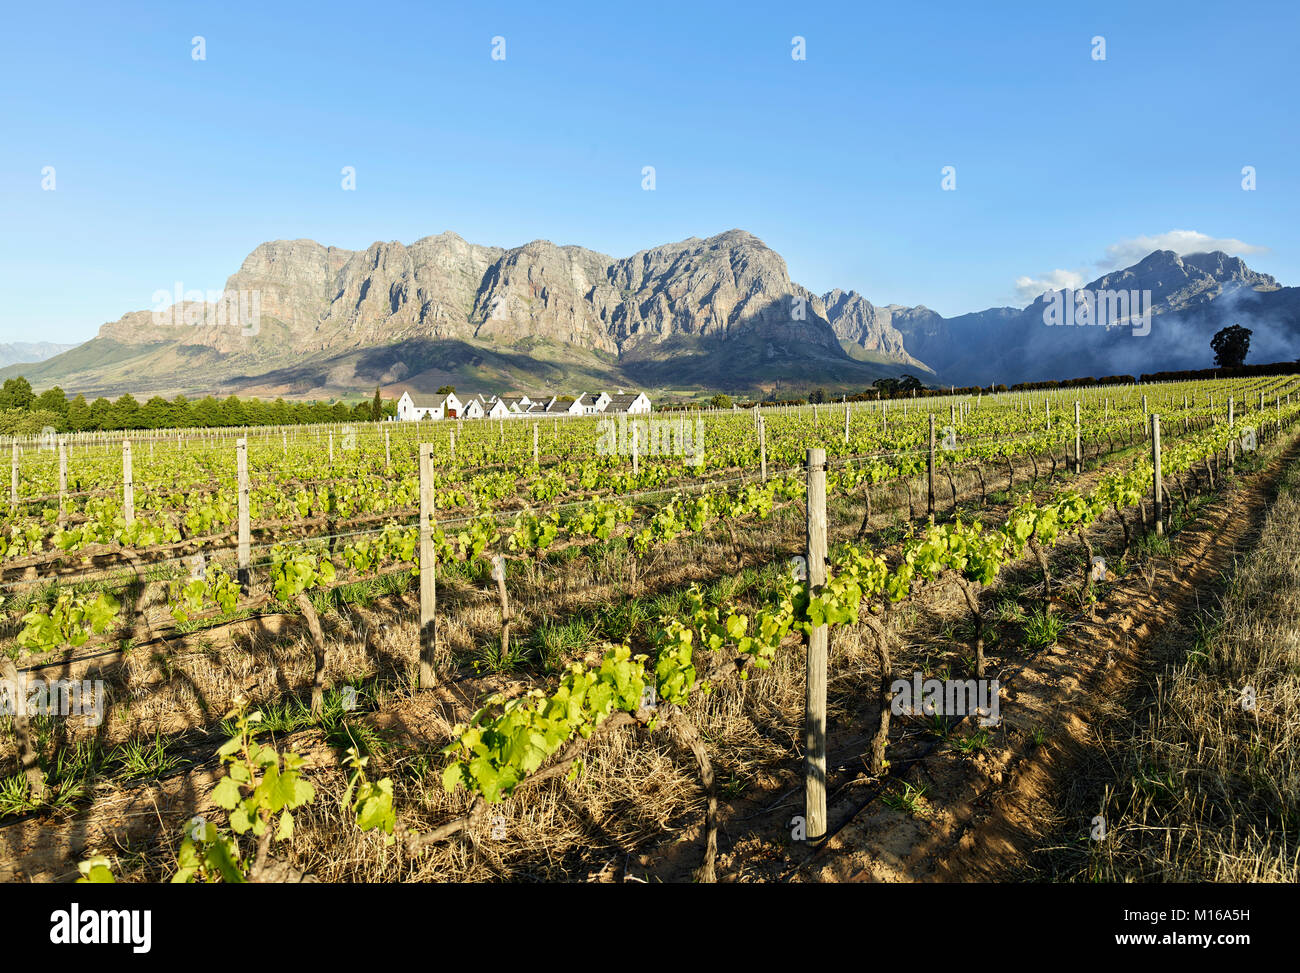 Wineries, Winegrowing, Stellenbosch, Cape Winelands, Western Cape, South Africa - Stock Image